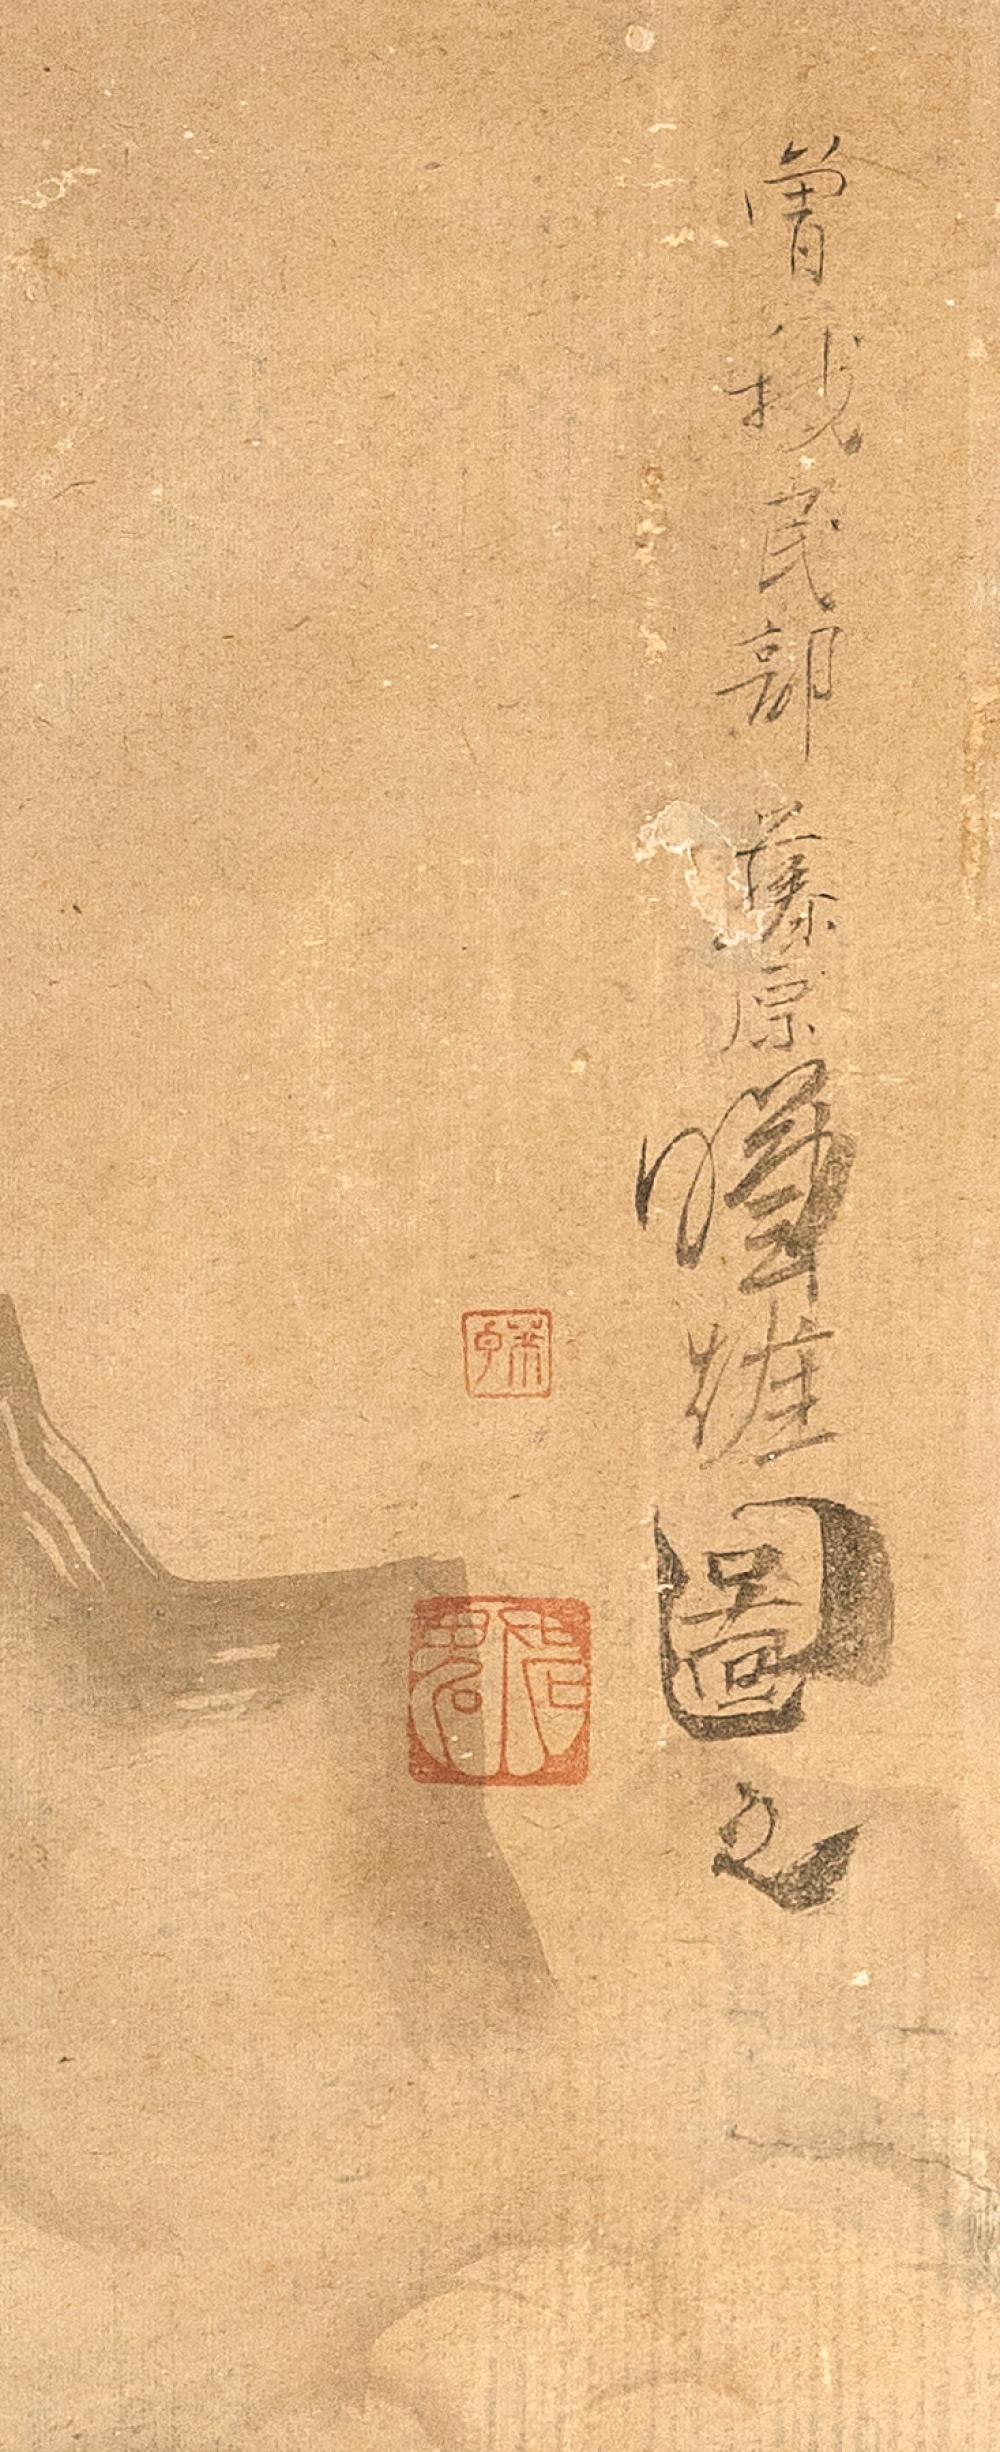 JAPANESE SCROLL PAINTING ON PAPER Depicts sages on a cliffside and an approaching sage and attendant. Signed and seal marked. 51.5